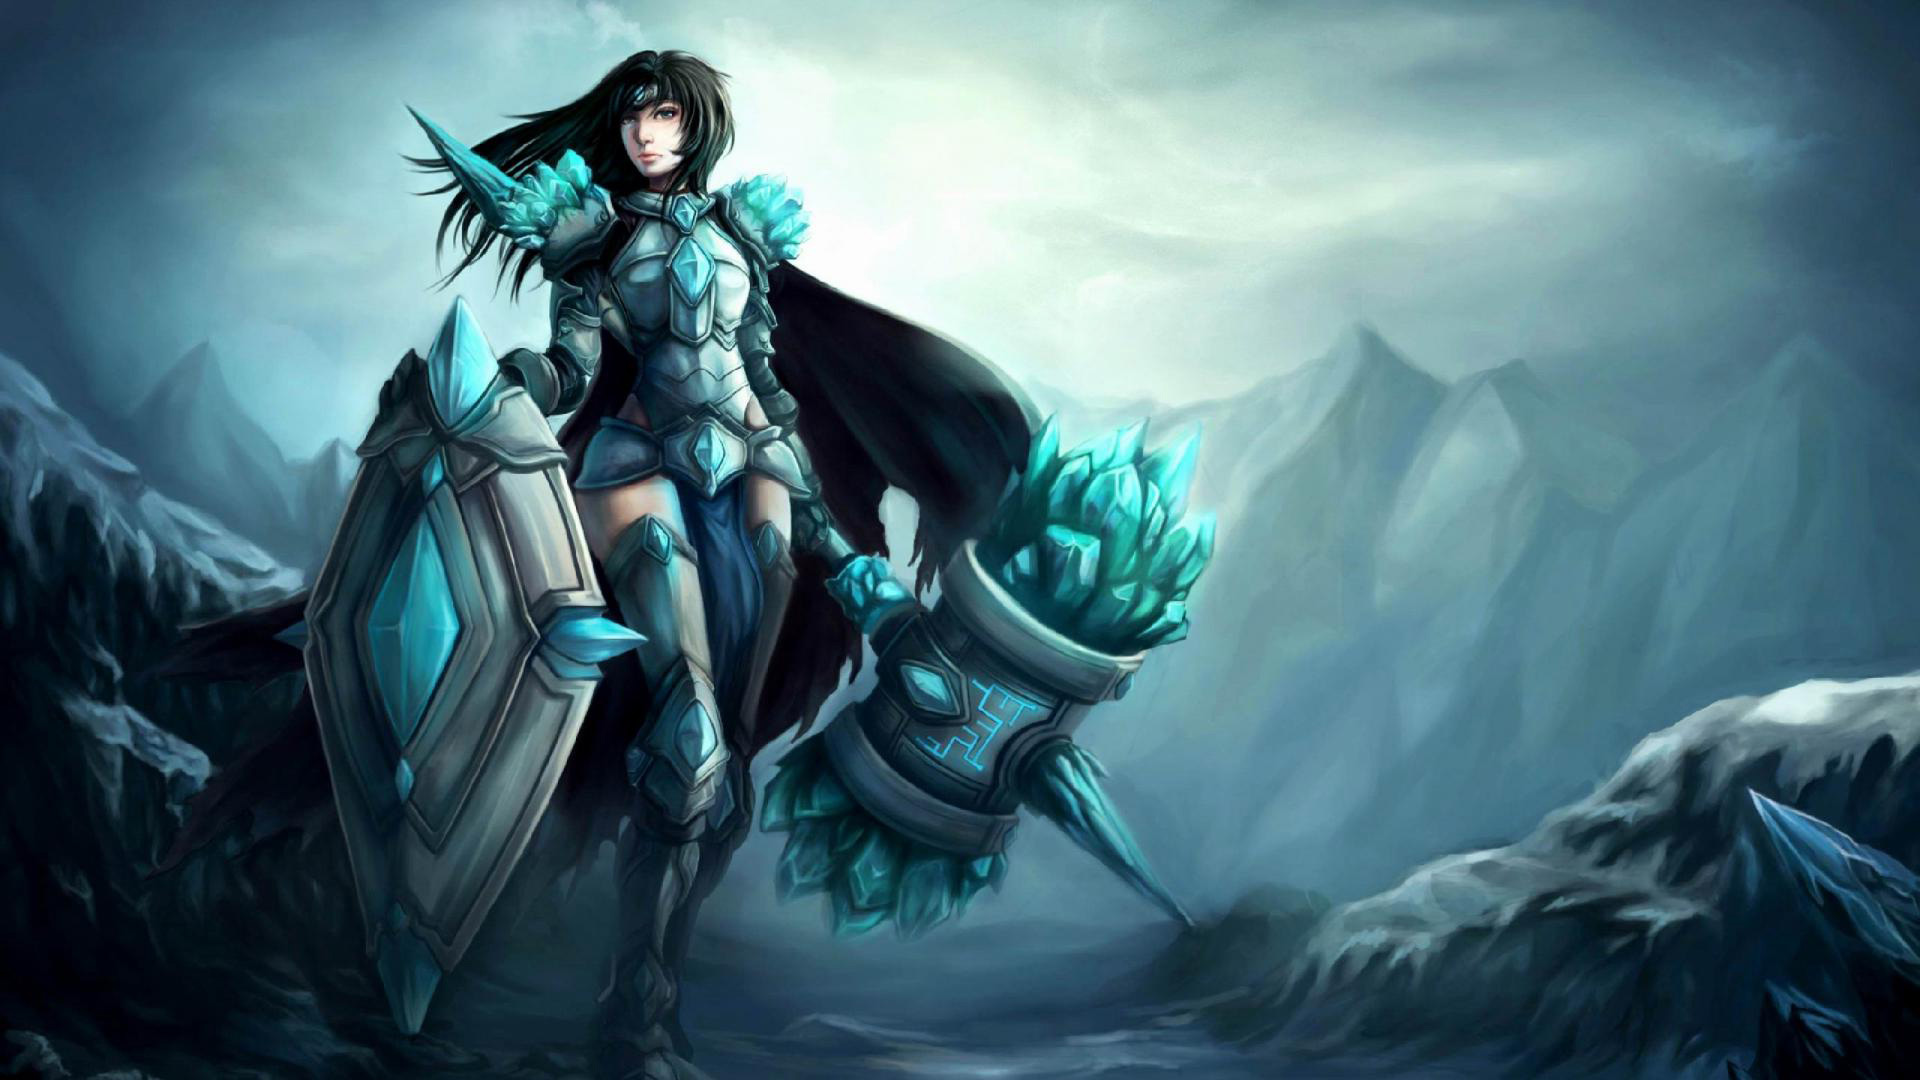 Best Video Game Wallpapers HD 1920x1080